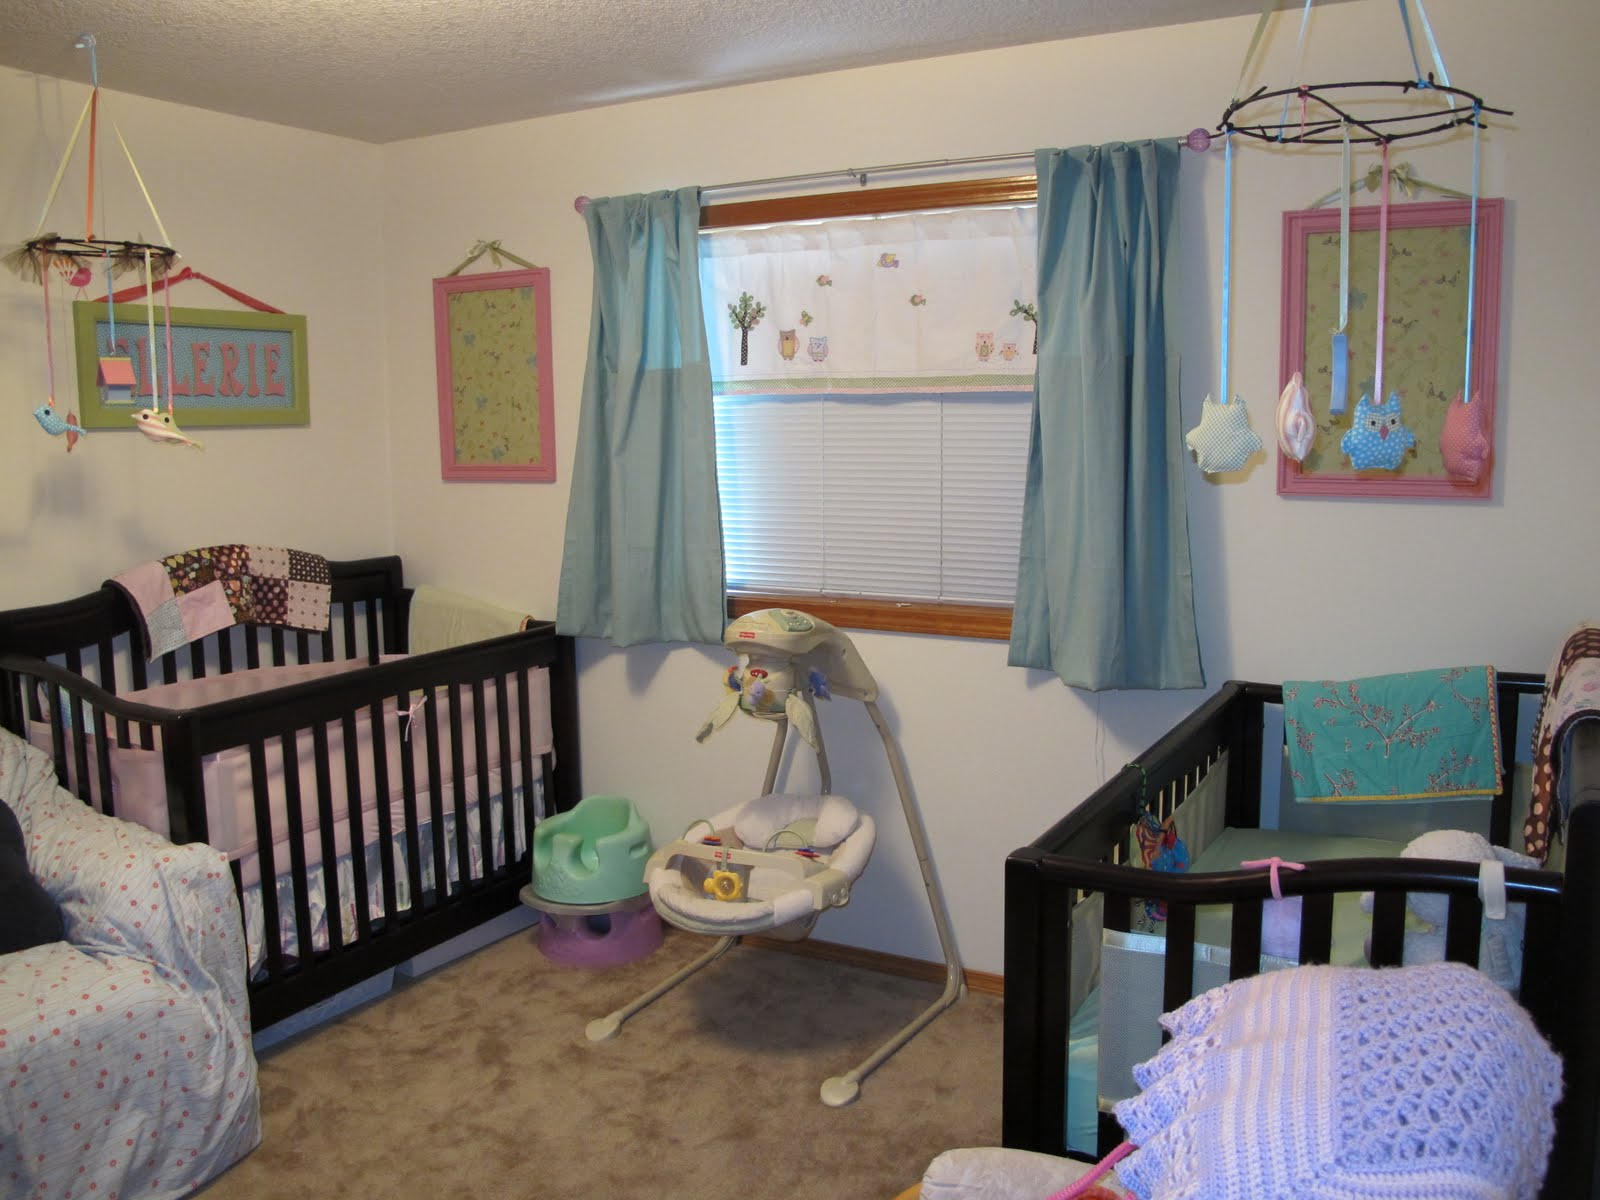 Marvelous Best Baby Cribs Designed in Twins Model for Small Room  HouseBeauty